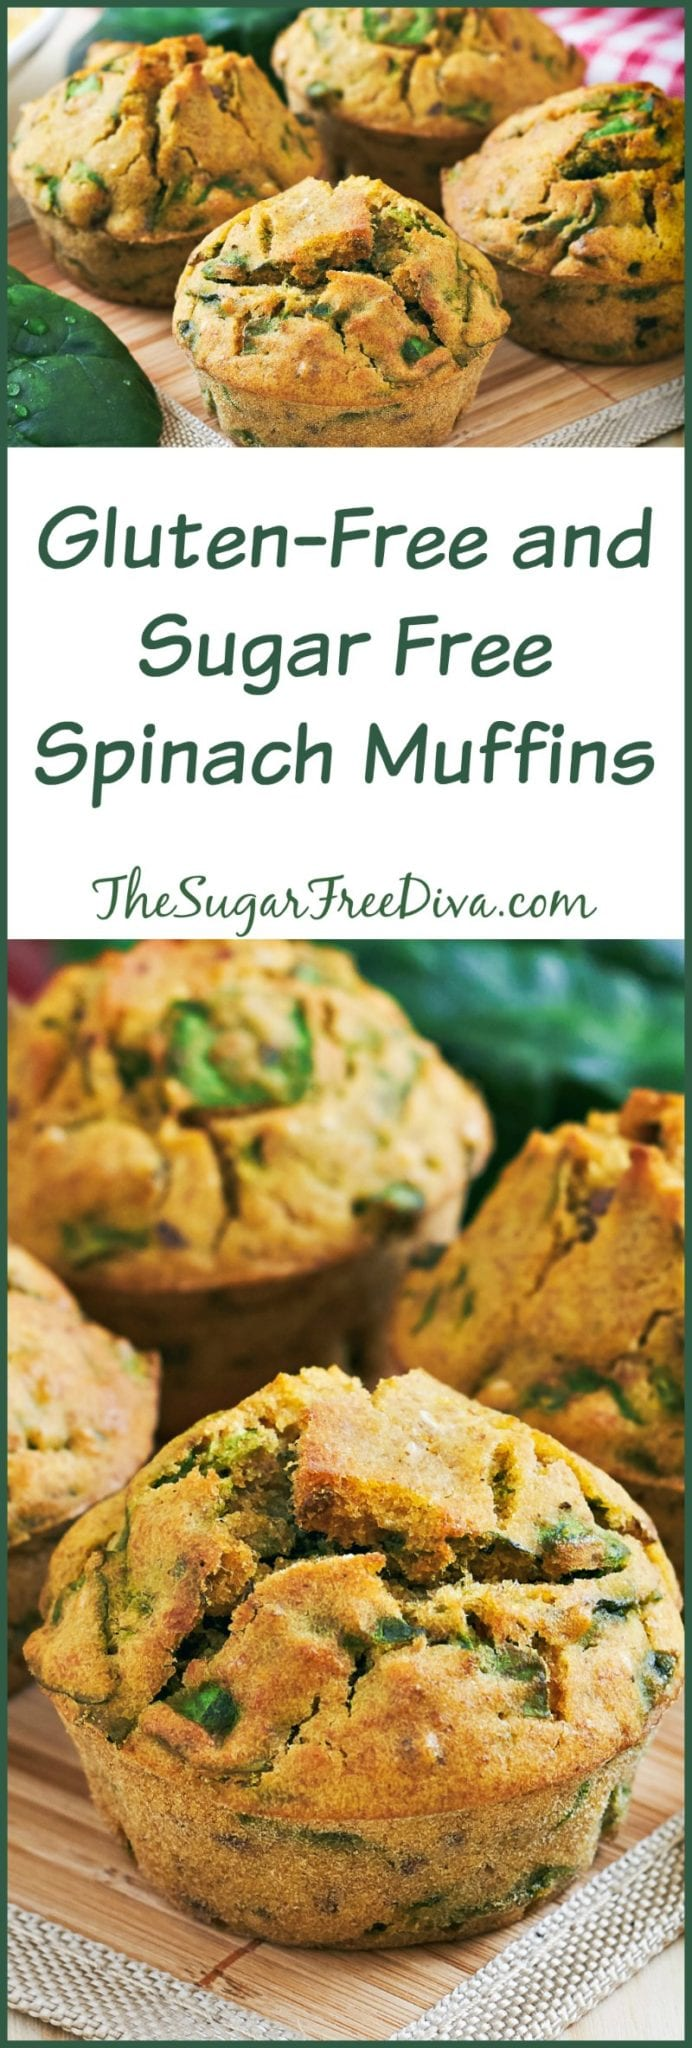 Gluten-Free and Sugar Free Spinach Muffins